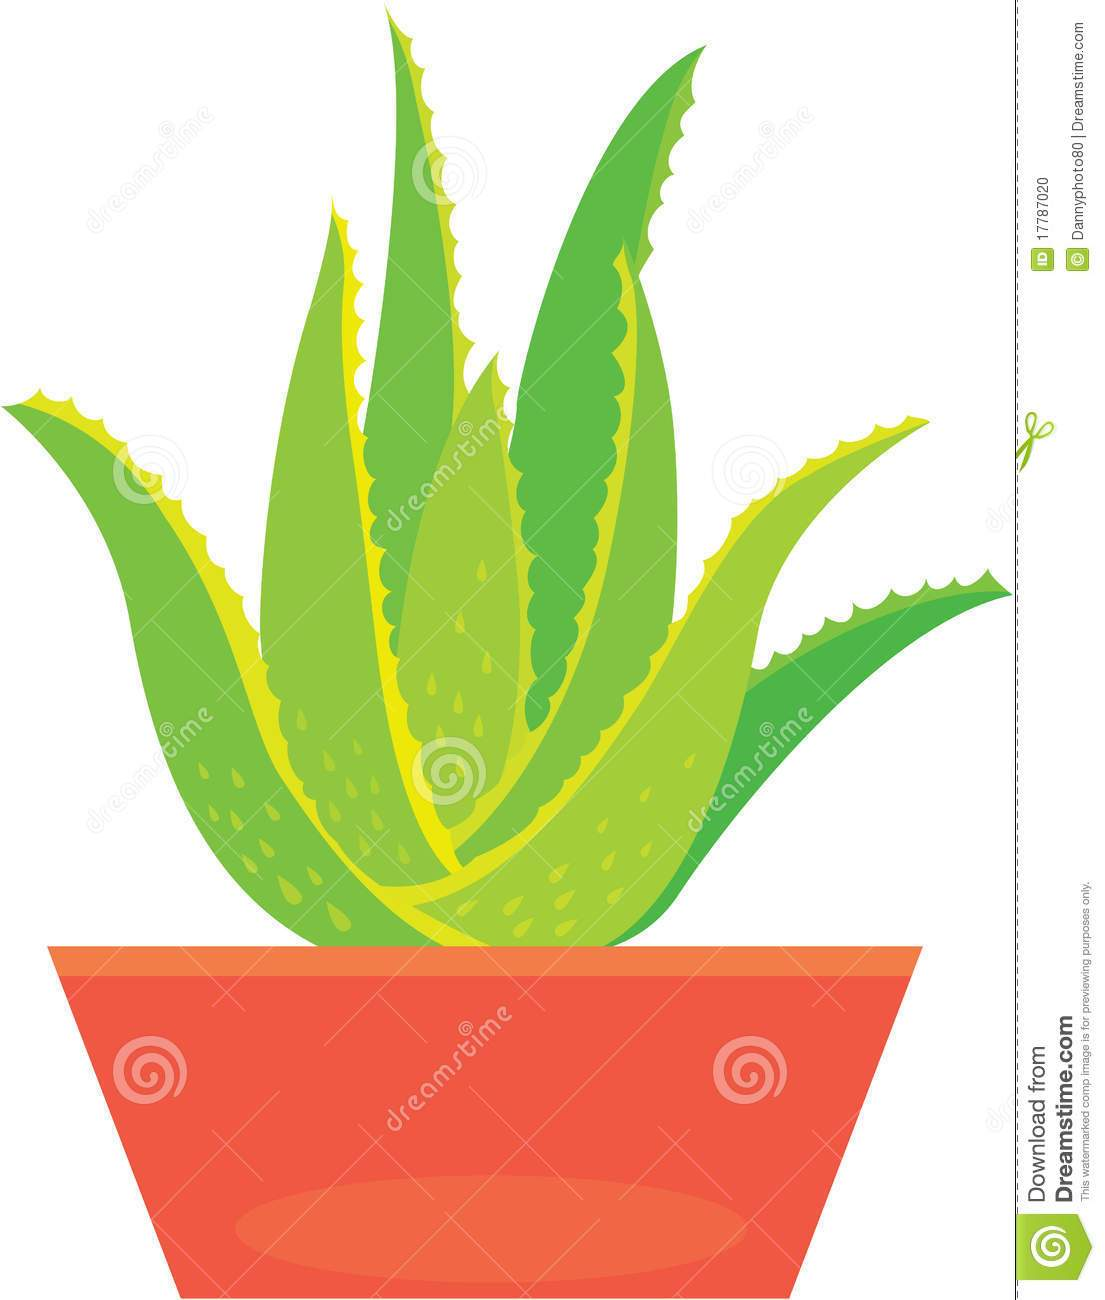 Clipart aloe vera png royalty free library Aloe vera plant clipart 3 » Clipart Portal png royalty free library